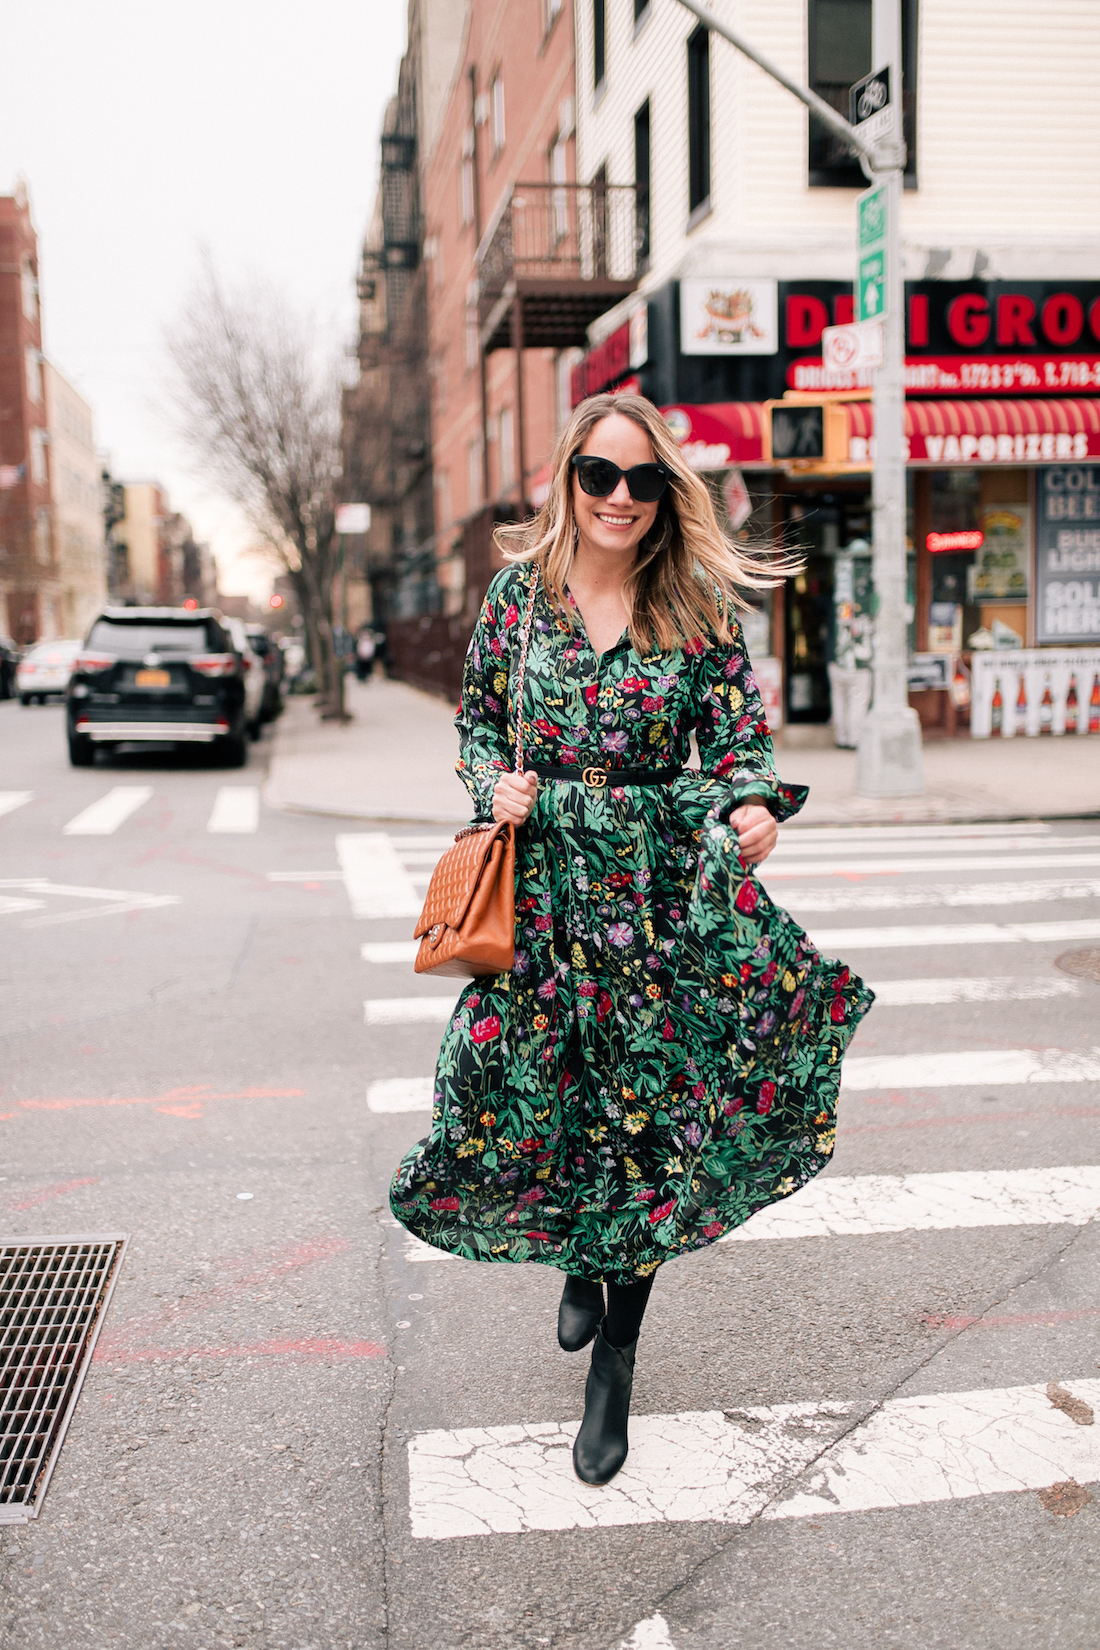 Grace Atwood -  ASOS Floral Maxi Dress // Express Tights // Soludos Boots (on sale!)// Rachel Comey Earrings // Chanel Purse // Gucci Belt // Quay Sunglasses